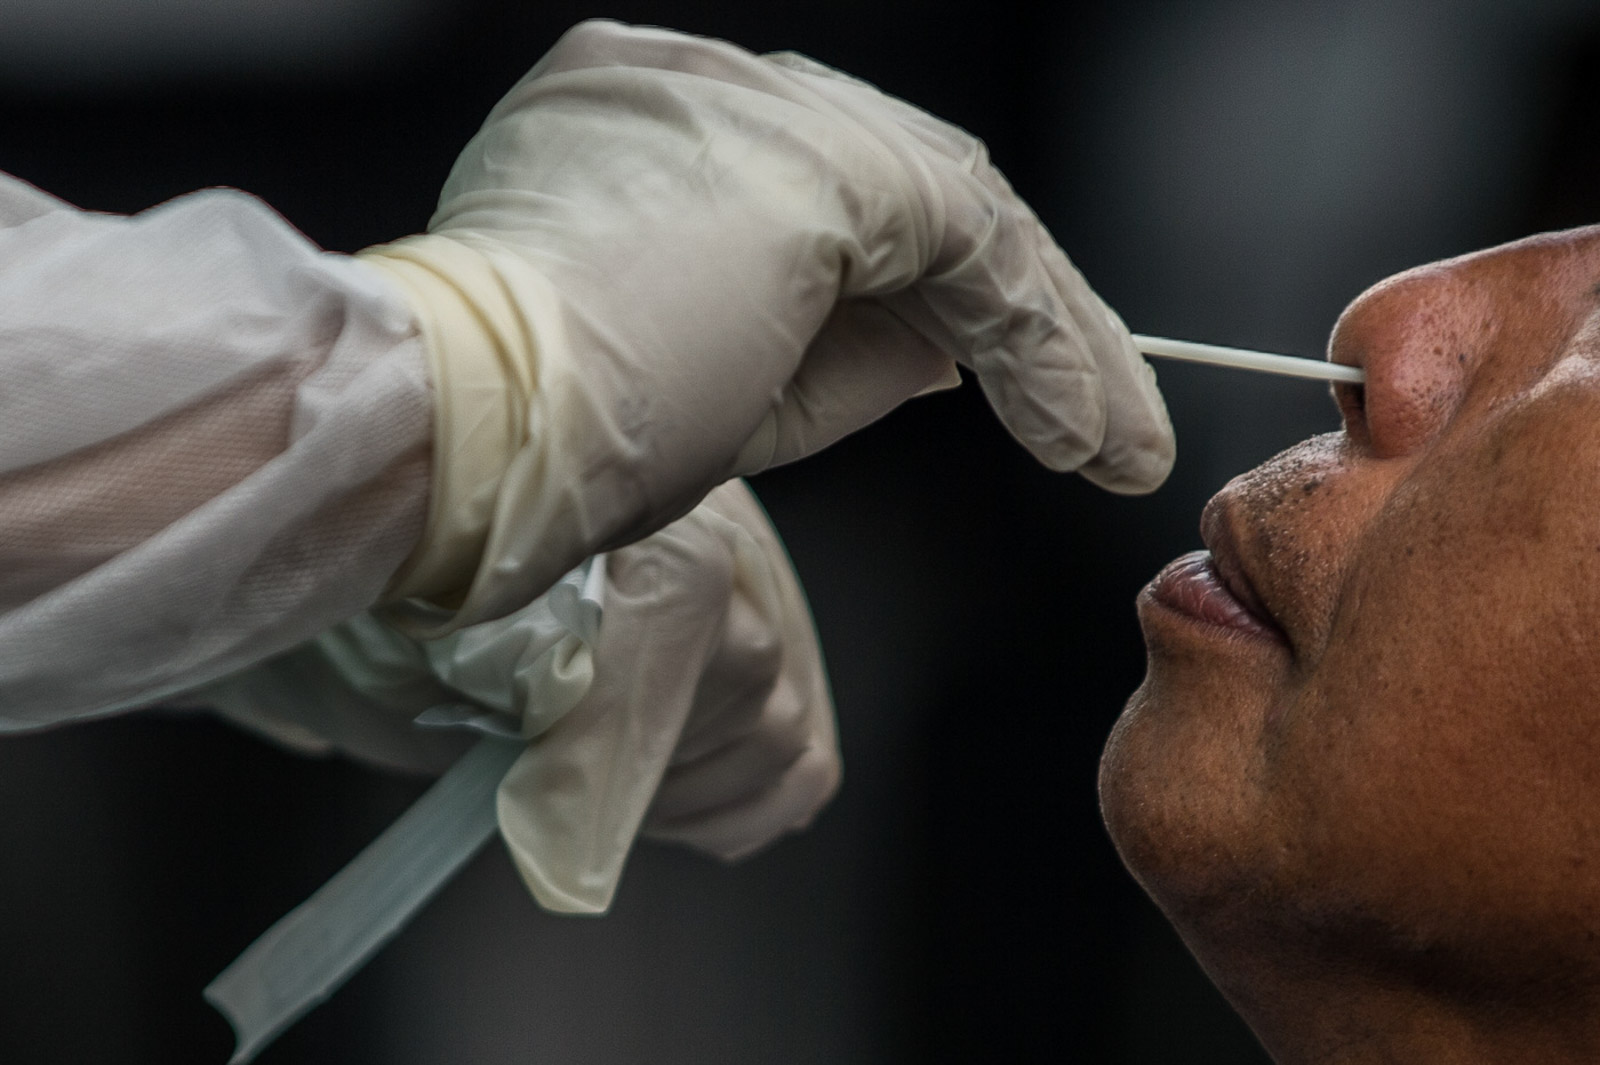 TEST. A health worker conducts a swab test to a suspected COVID-19 patient in the Sta. Ana Hospital in Manila on April 17, 2020. Photo by Lisa Marie David/Rappler